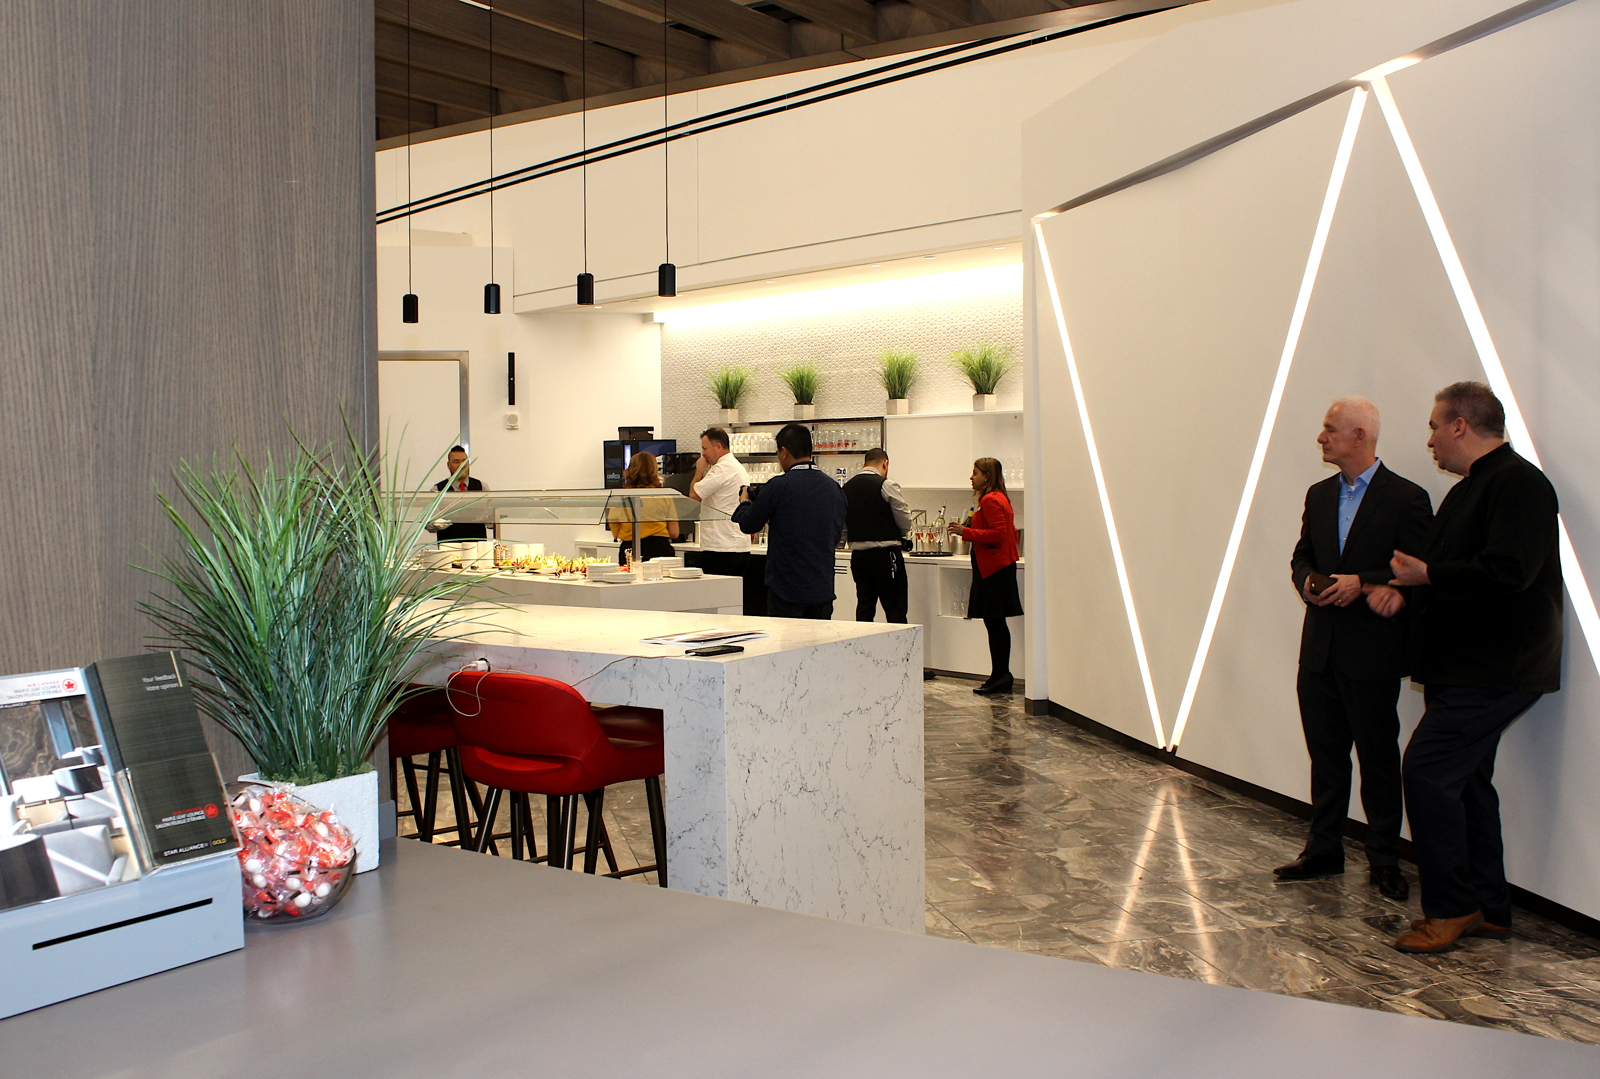 The new lounge is the third Maple Leaf Lounge Air Canada is operating in the U.S.